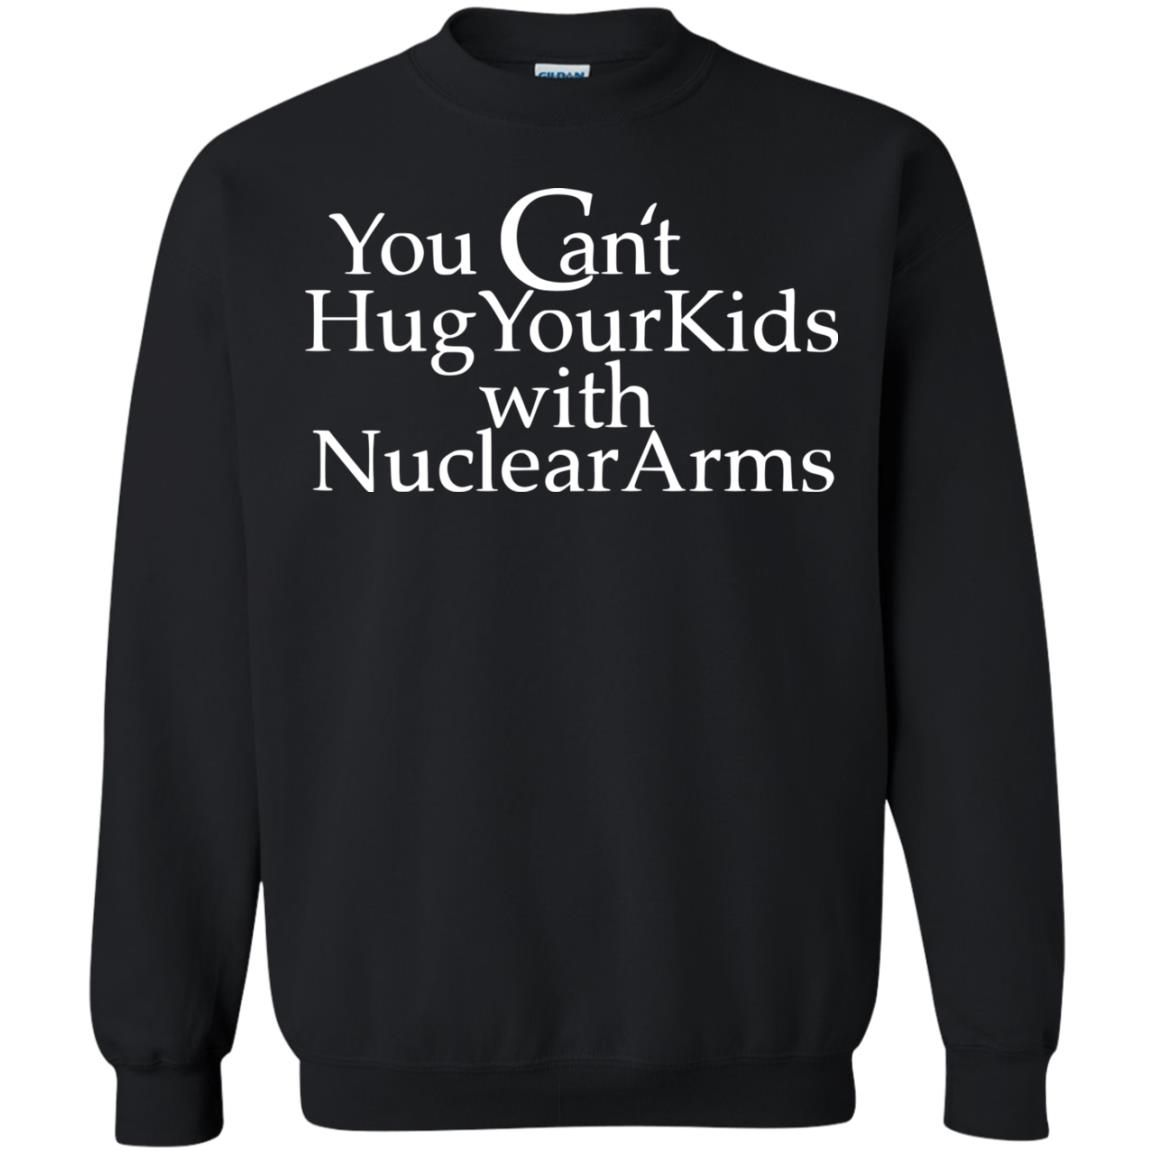 image 709 - You Can Hug Your Kids With Nuclear Arm shirt